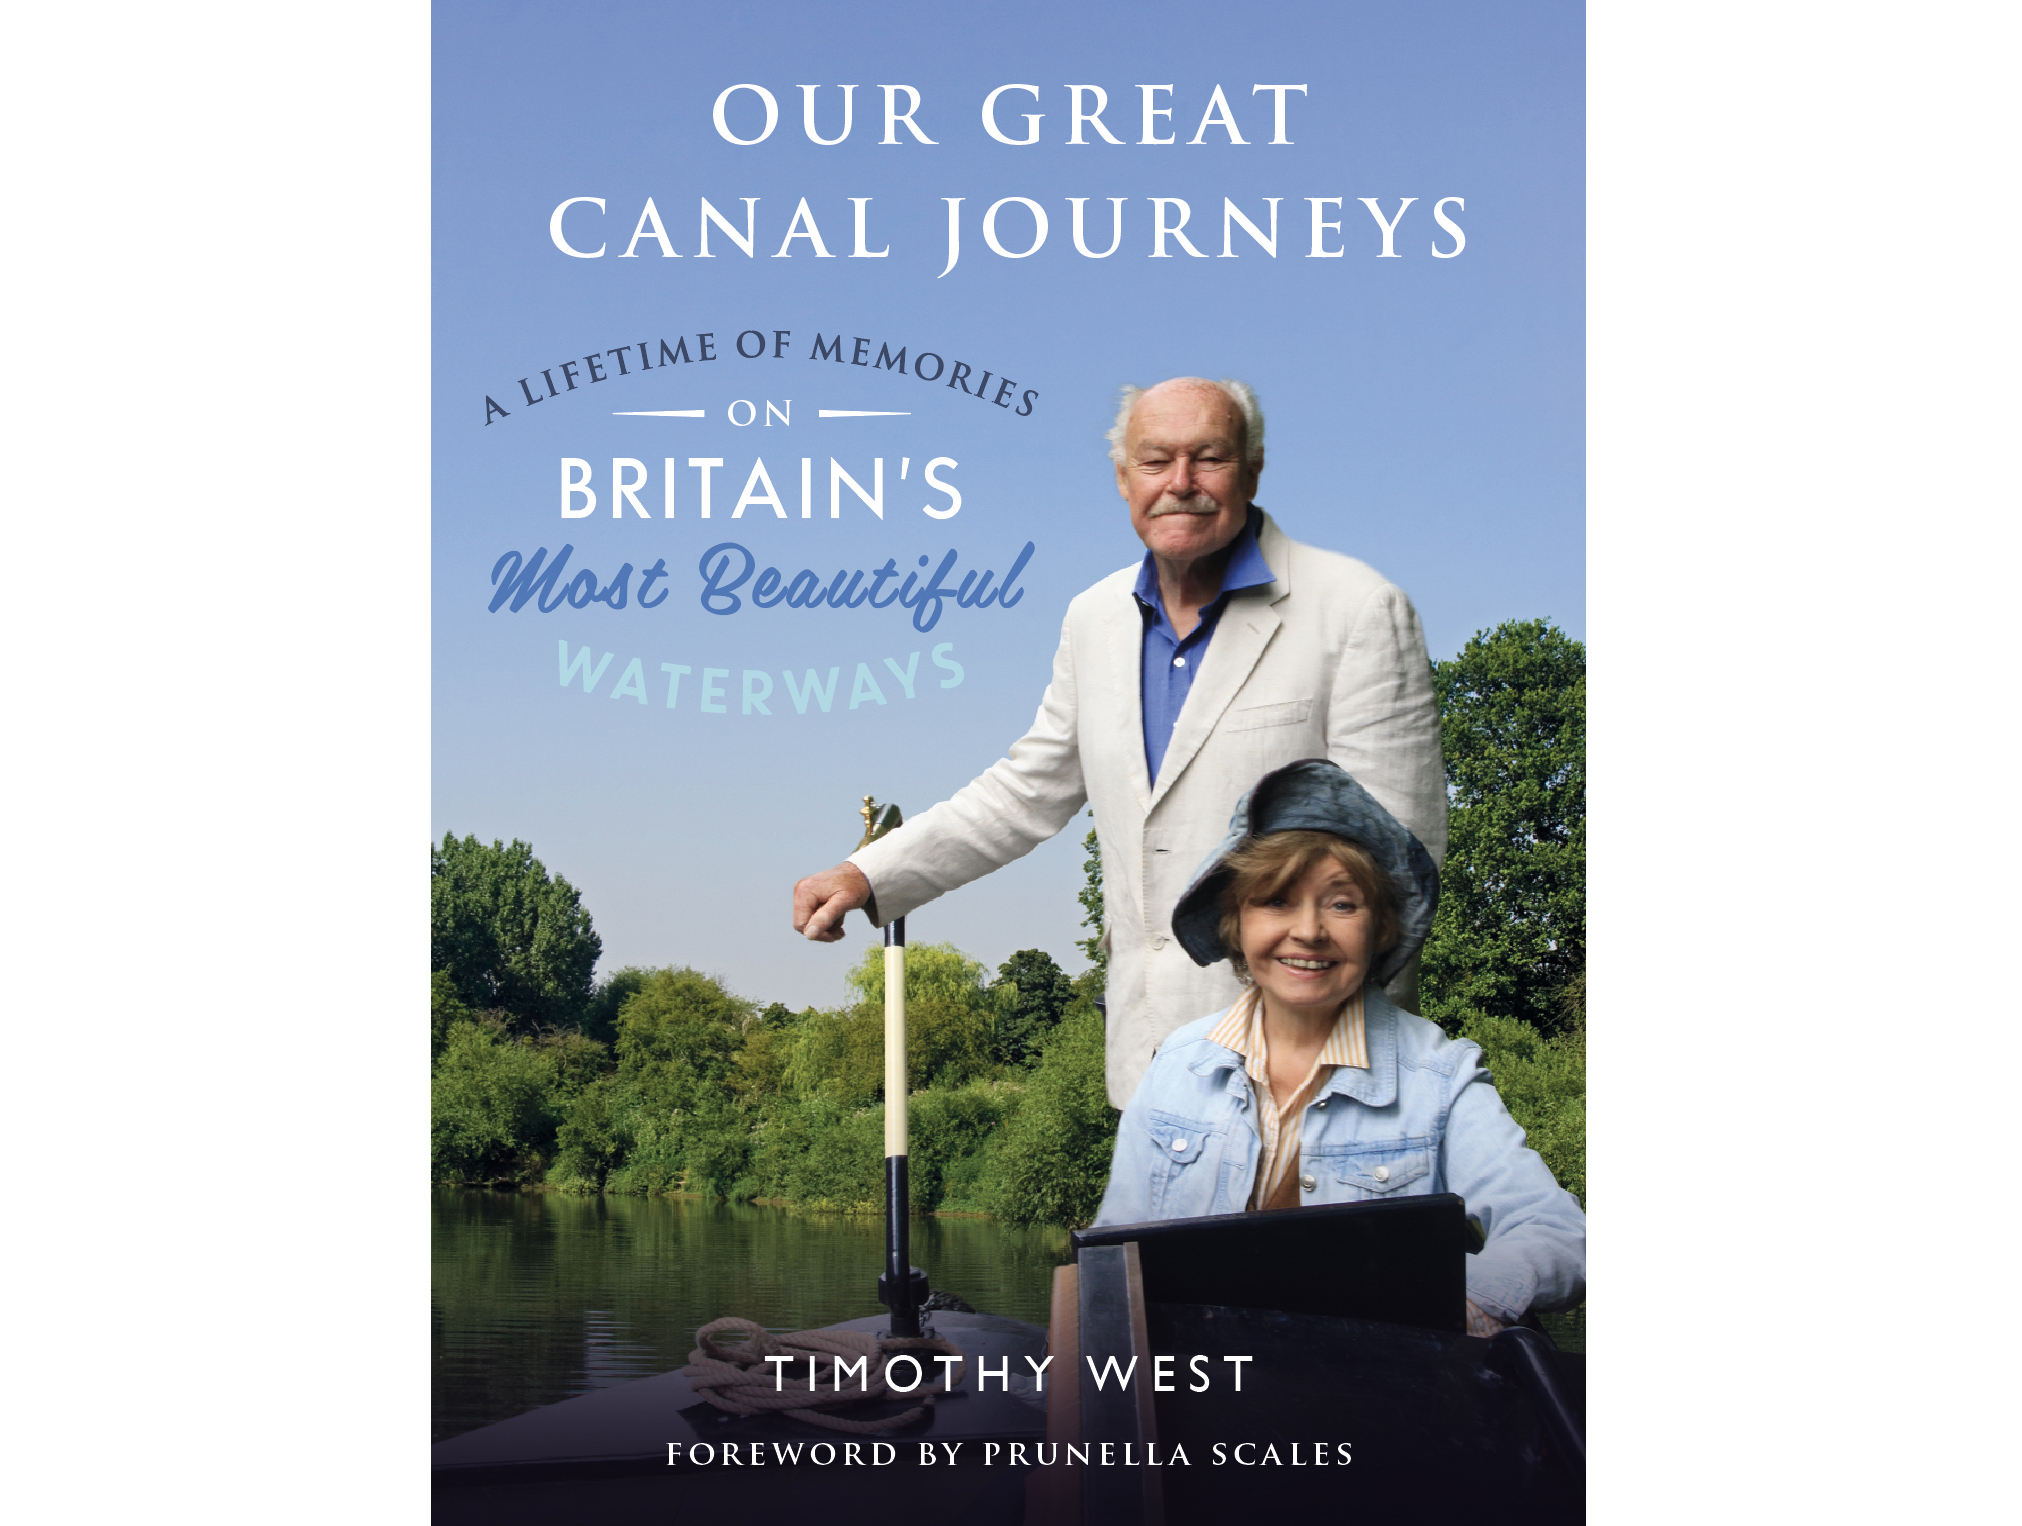 Our Great Canal Journeys (John Blake/PA)  Actor Timothy West's top 5 favourite canal journeys in Europe – including Scots one ef34ad0b b198 43ea 8847 c8caf217828b